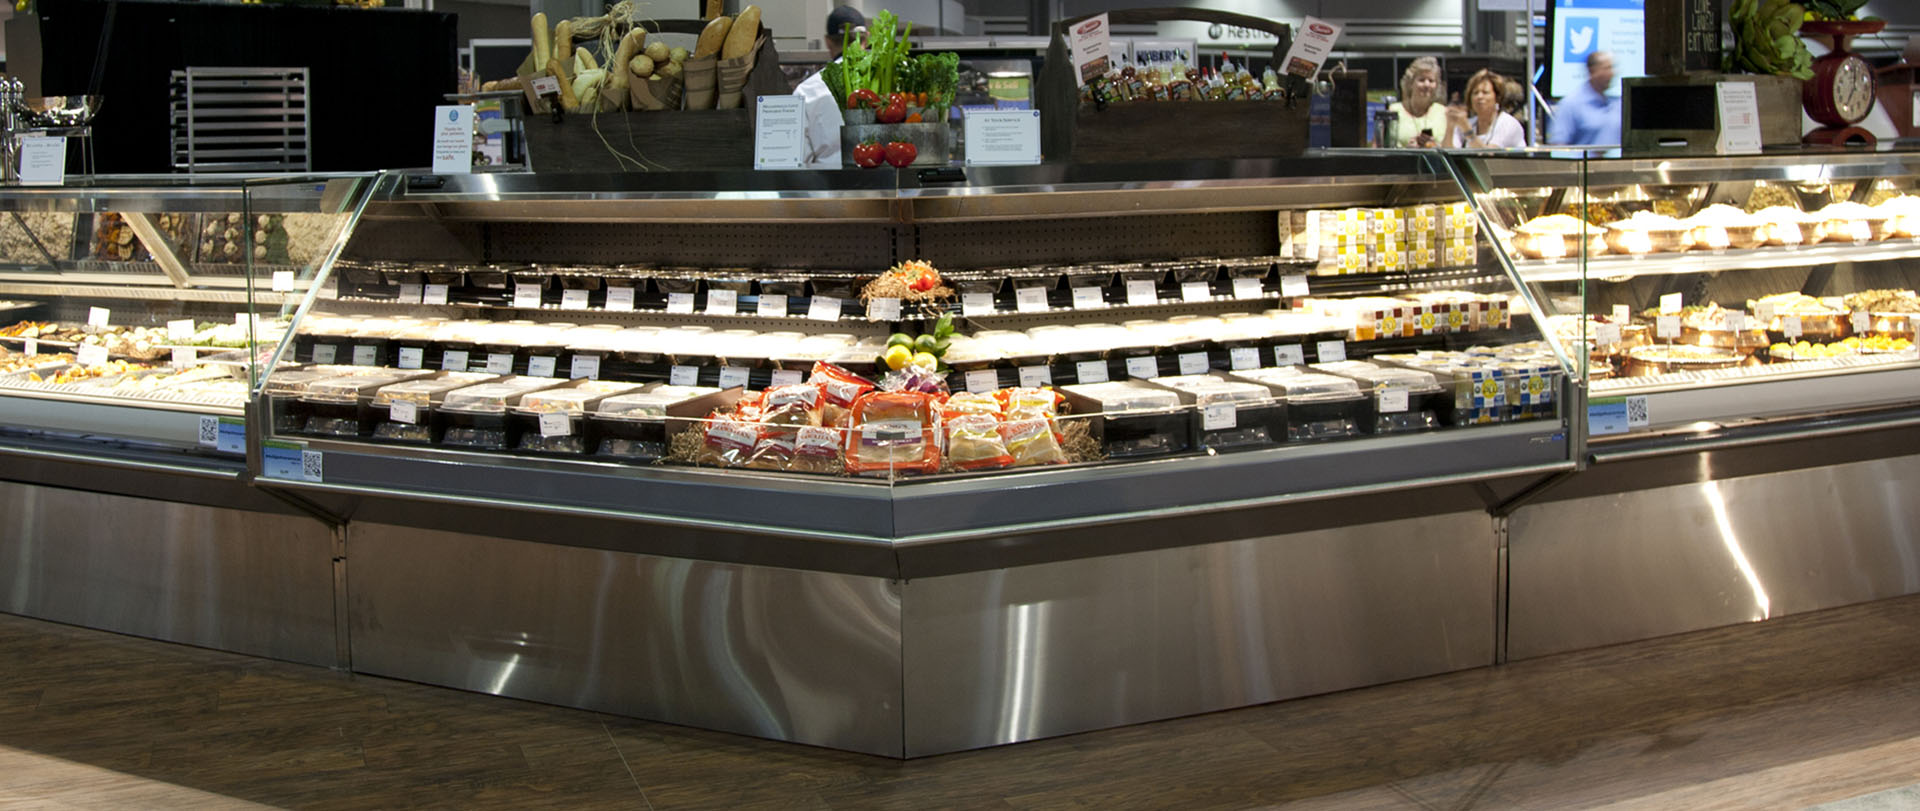 DLPF R Refrigerated Display Case For Bakery Beverage